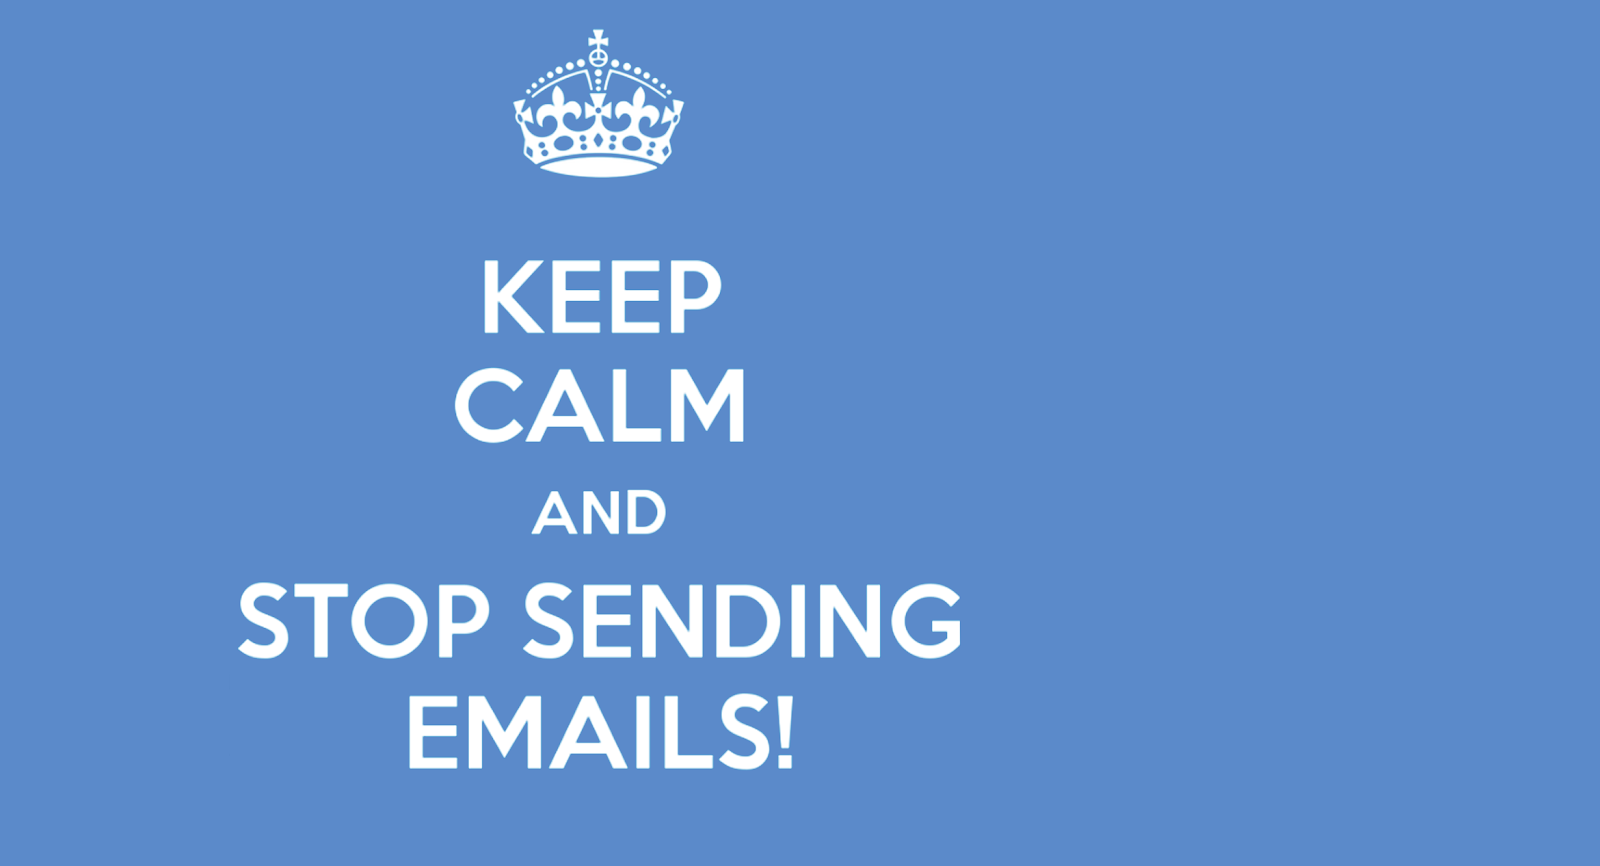 poster: keep calm and stop sending emails